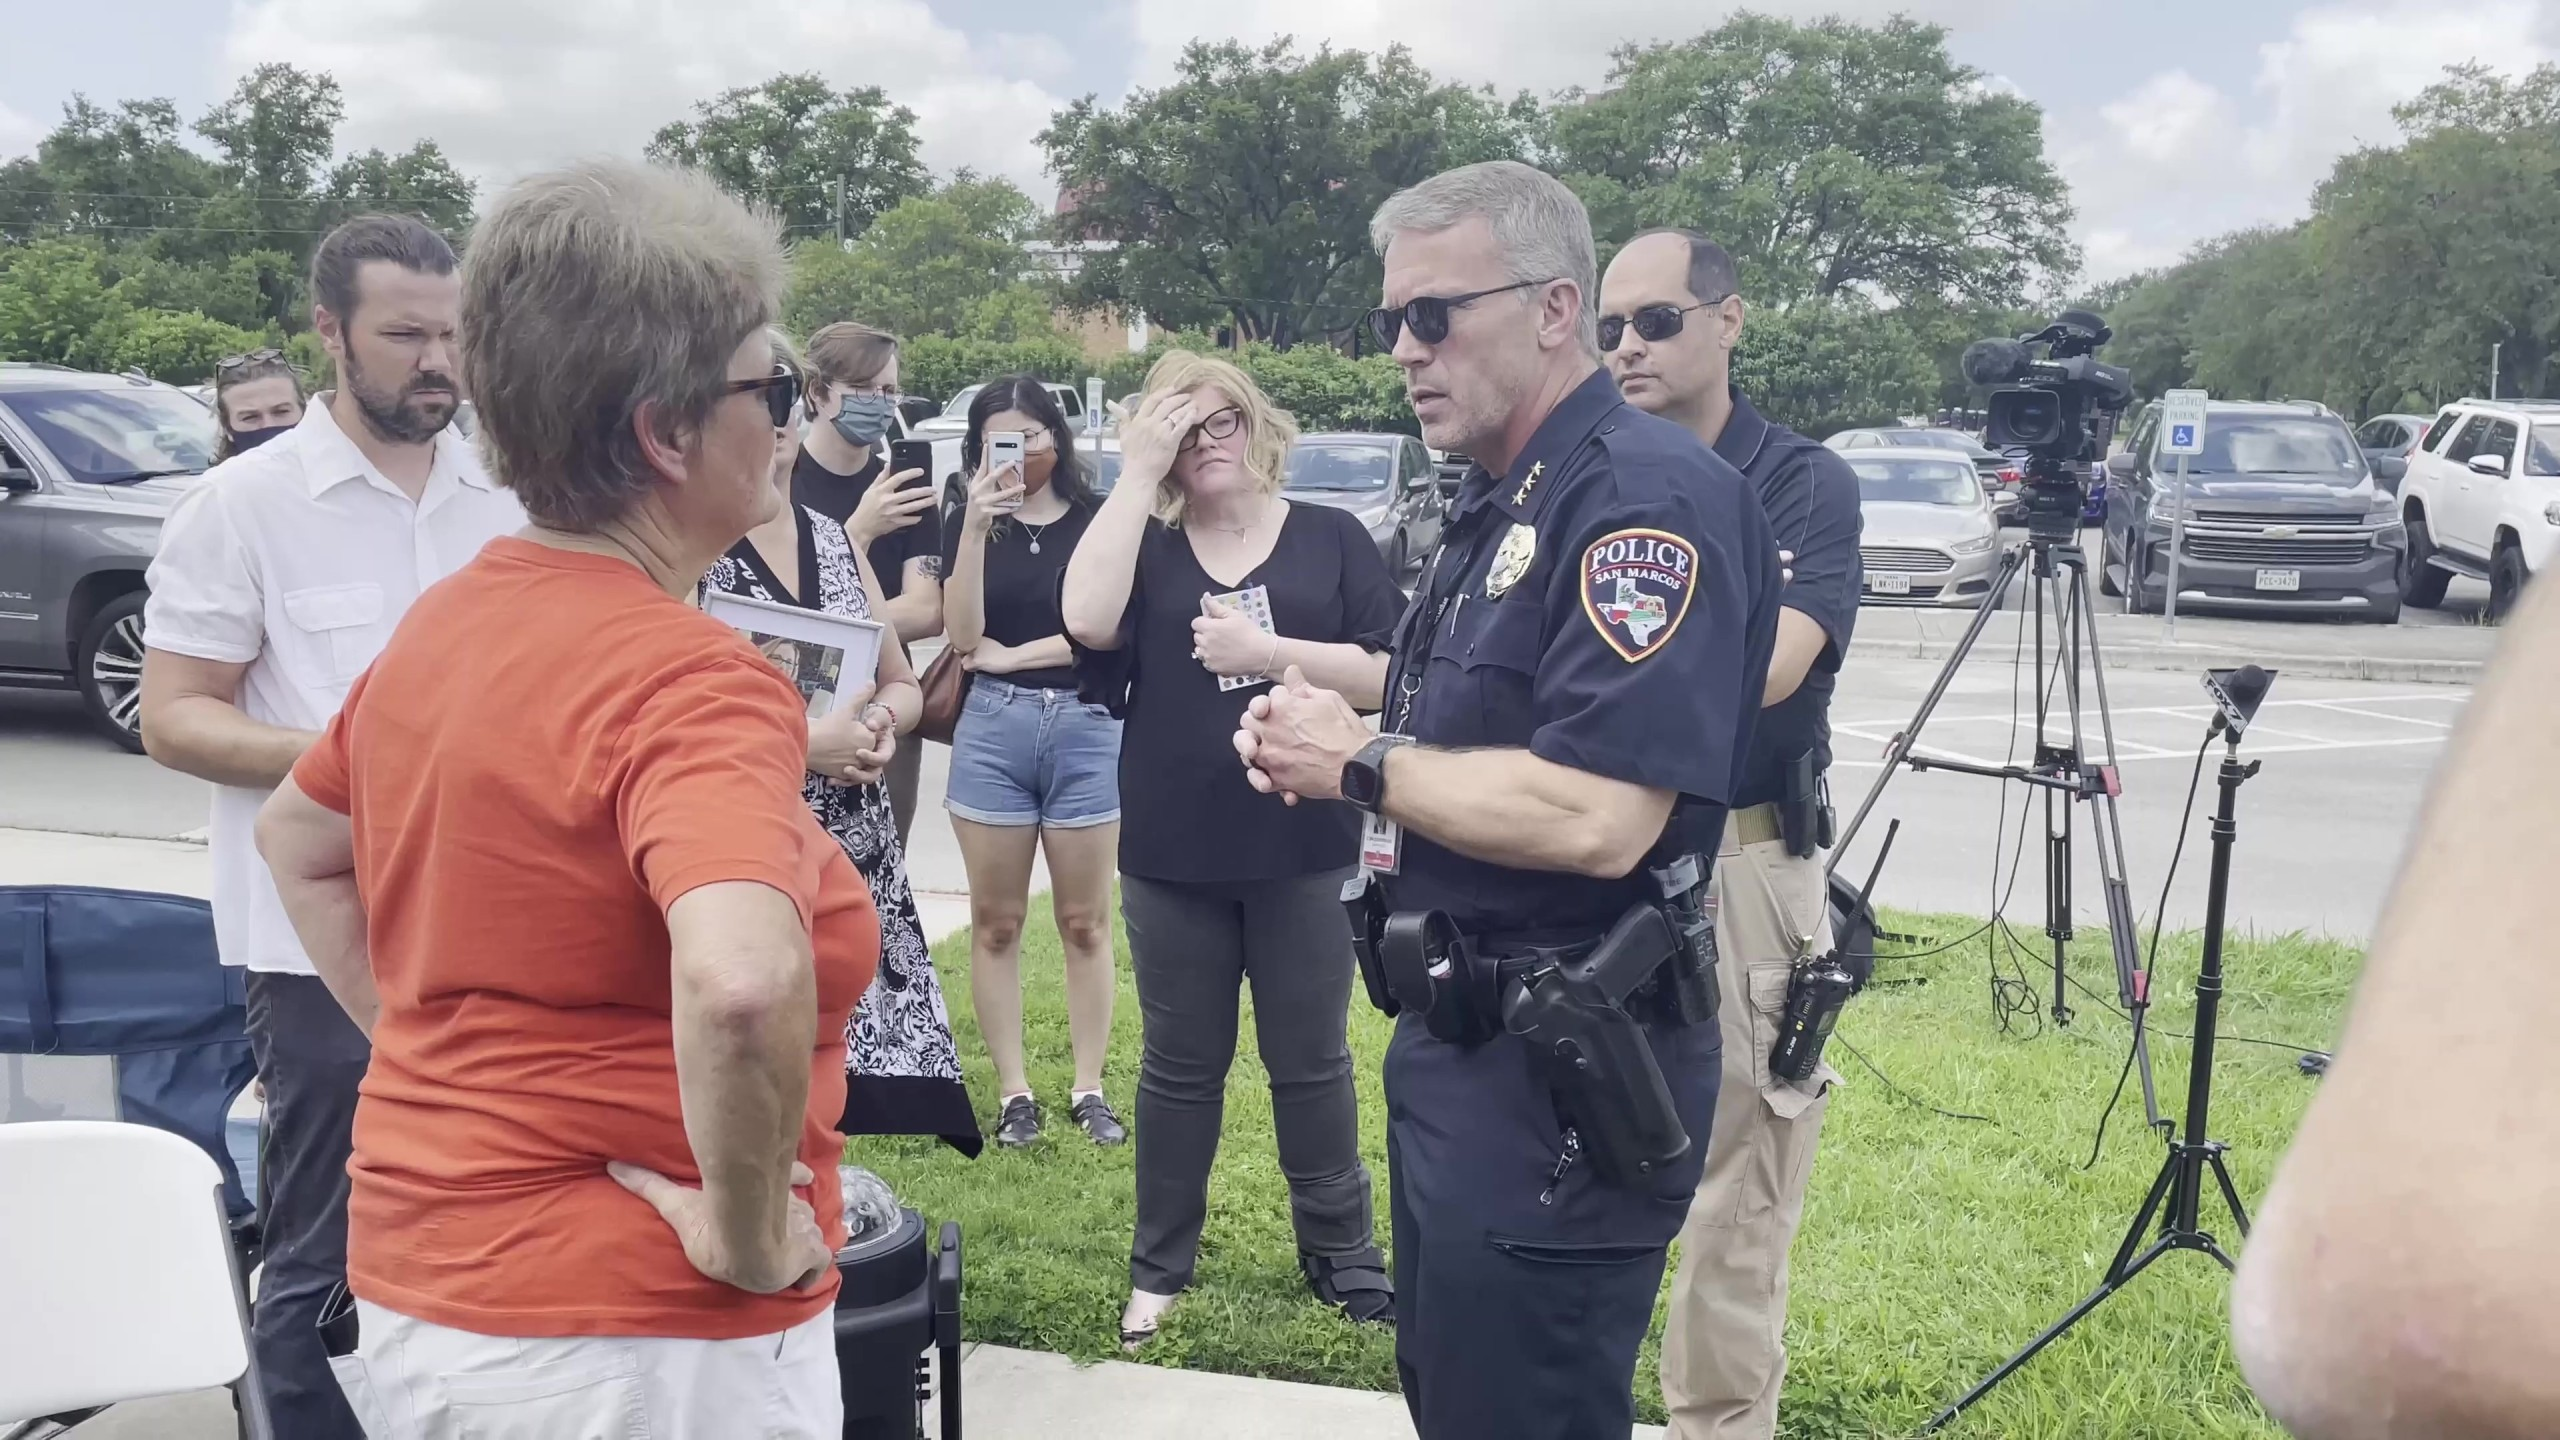 Pamela Watts, survivor of a crash caused by an off-duty San Marcos police officer that killed her partner, confronts San Marcos Police Chief Stan Standridge on how the case was handled and why the officer was allowed to return to work for the department. (KXAN Photo/Jala Washington)